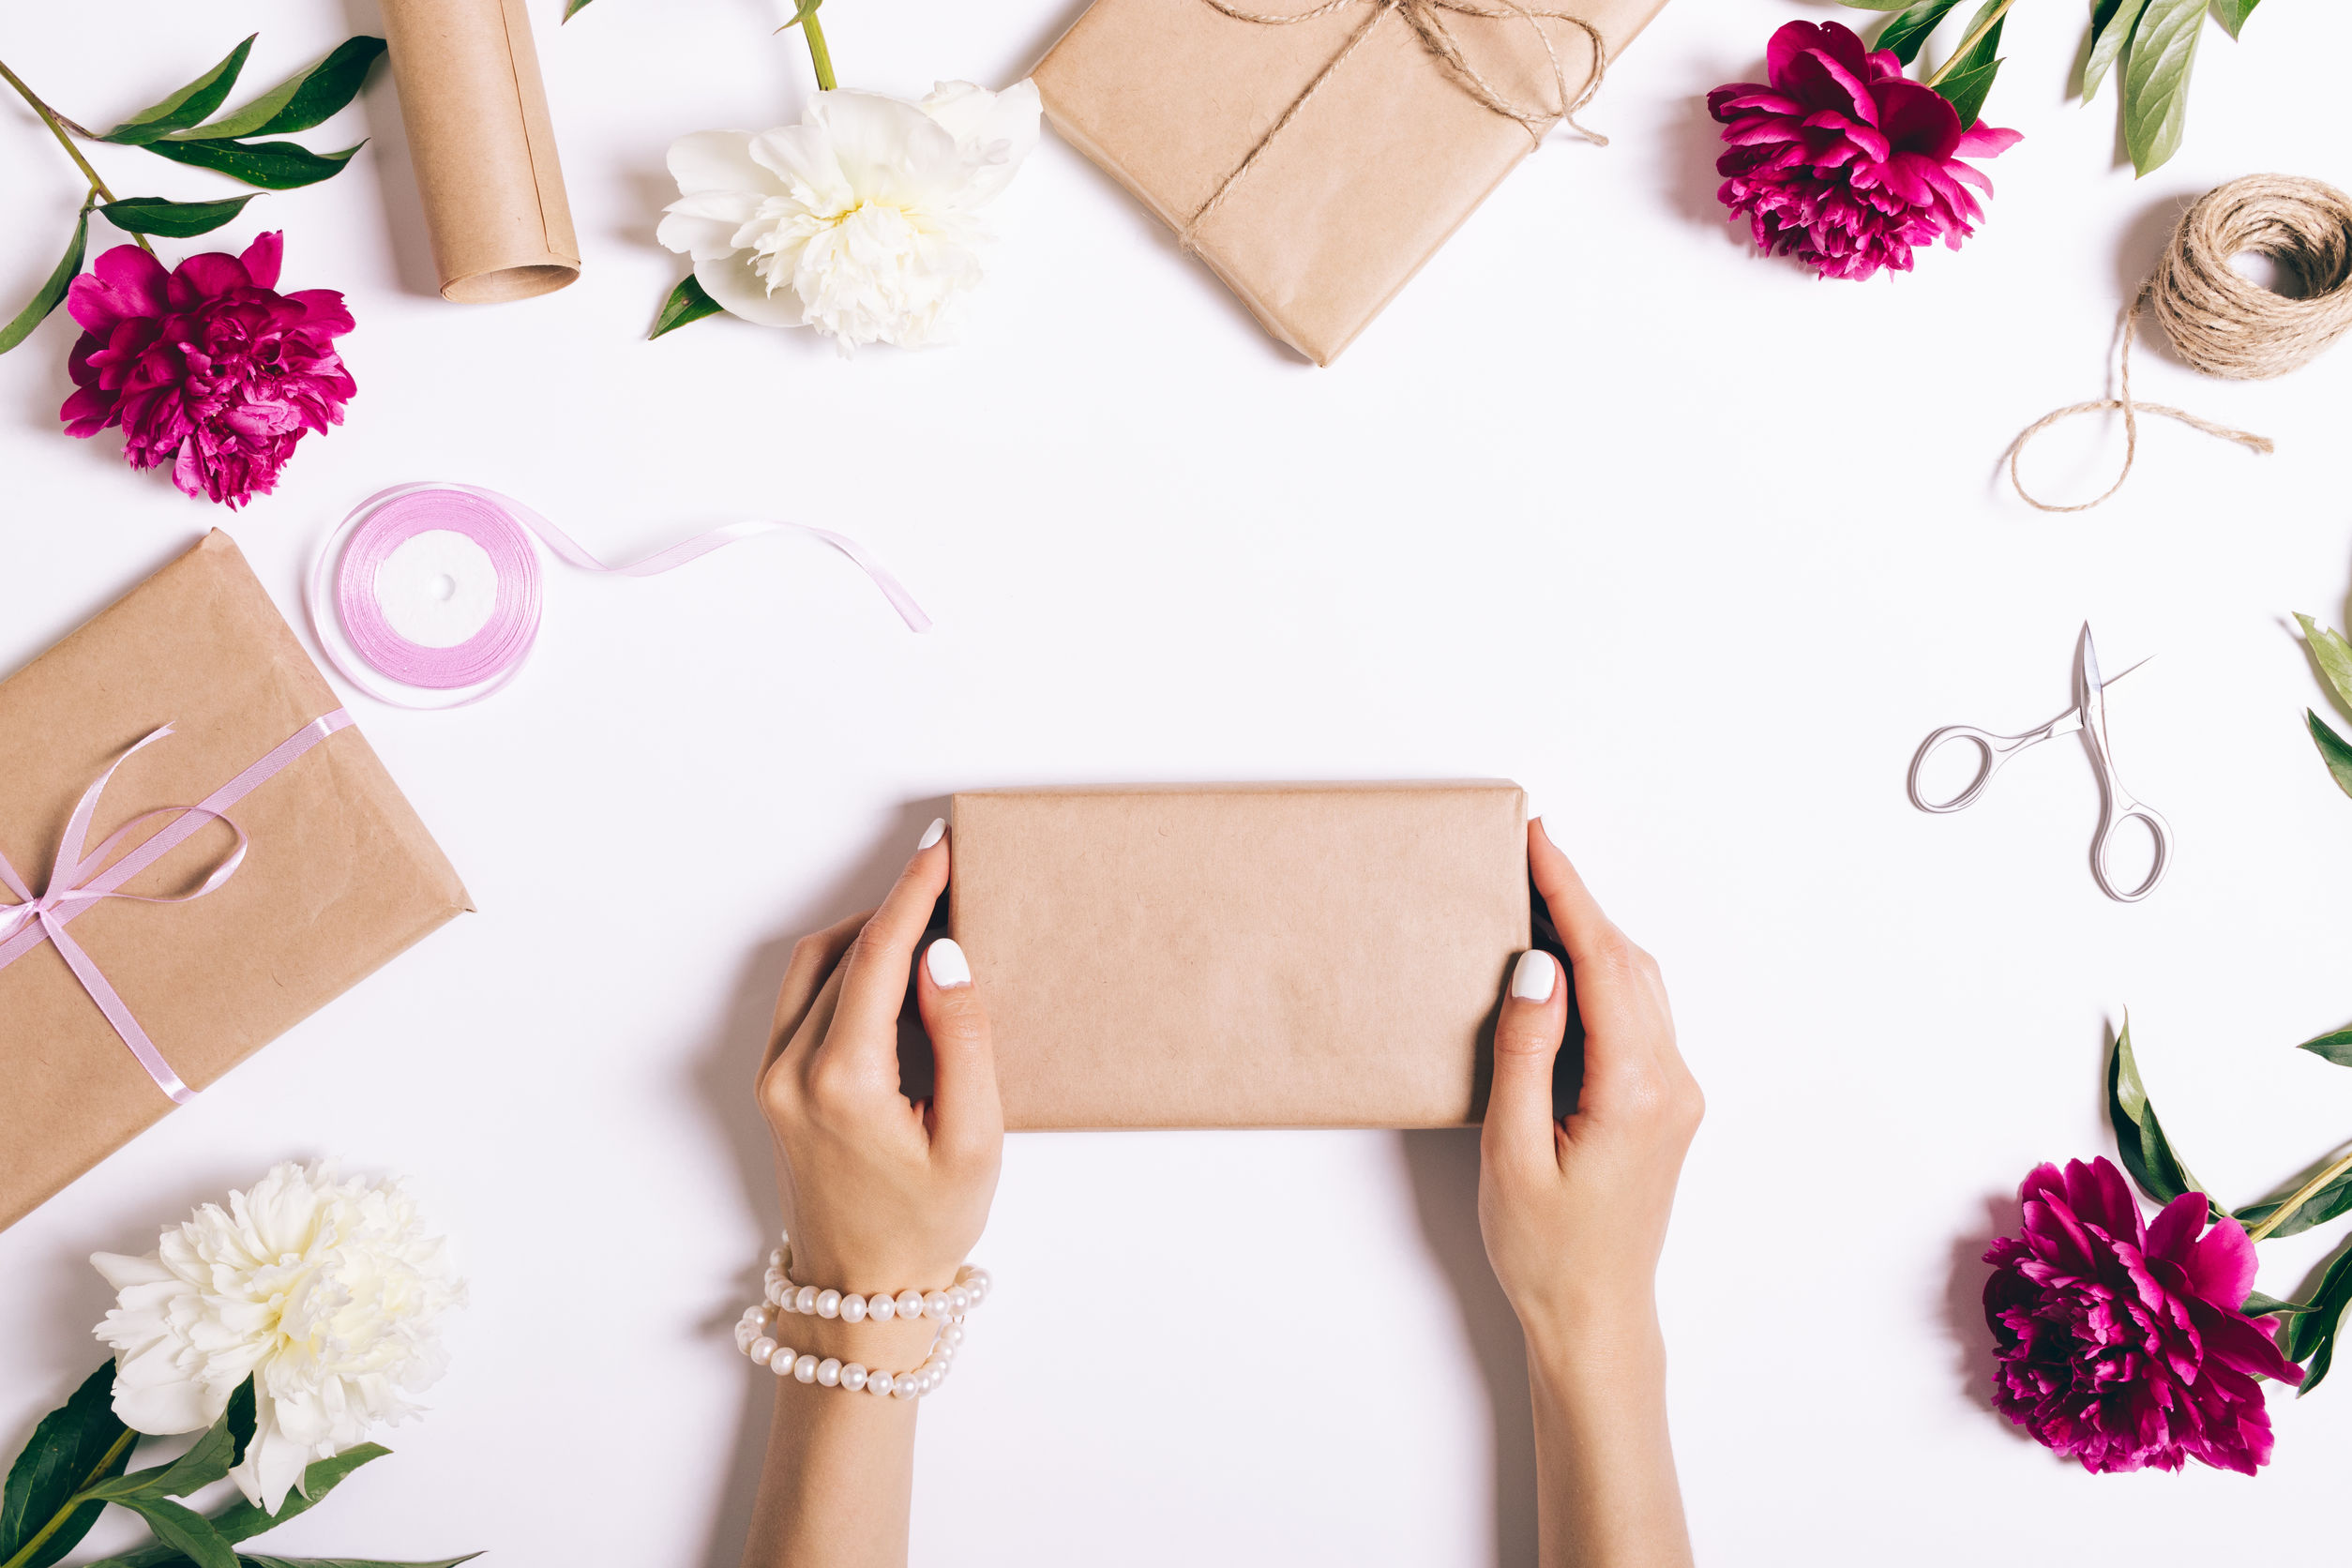 stores with gift wrapping service